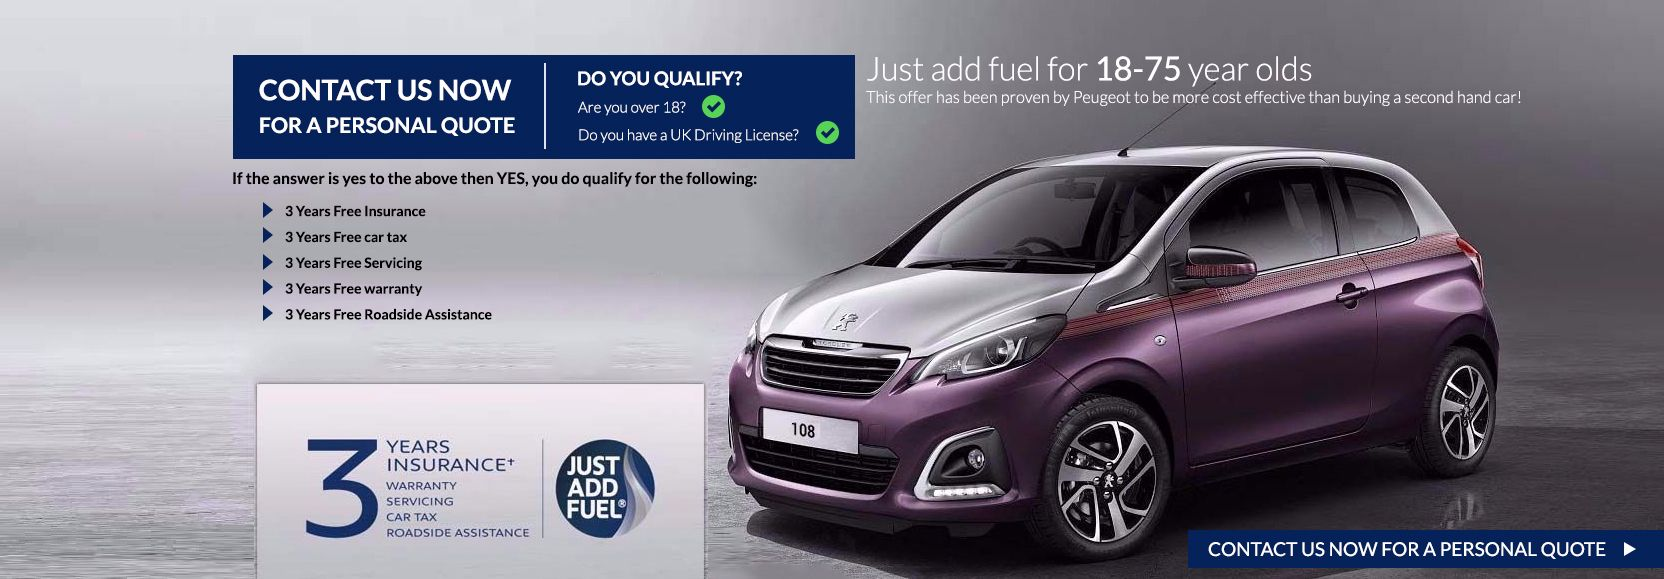 peugeot 108 new and used peugeot car dealers in cheshire gateway peugeot crewe. Black Bedroom Furniture Sets. Home Design Ideas